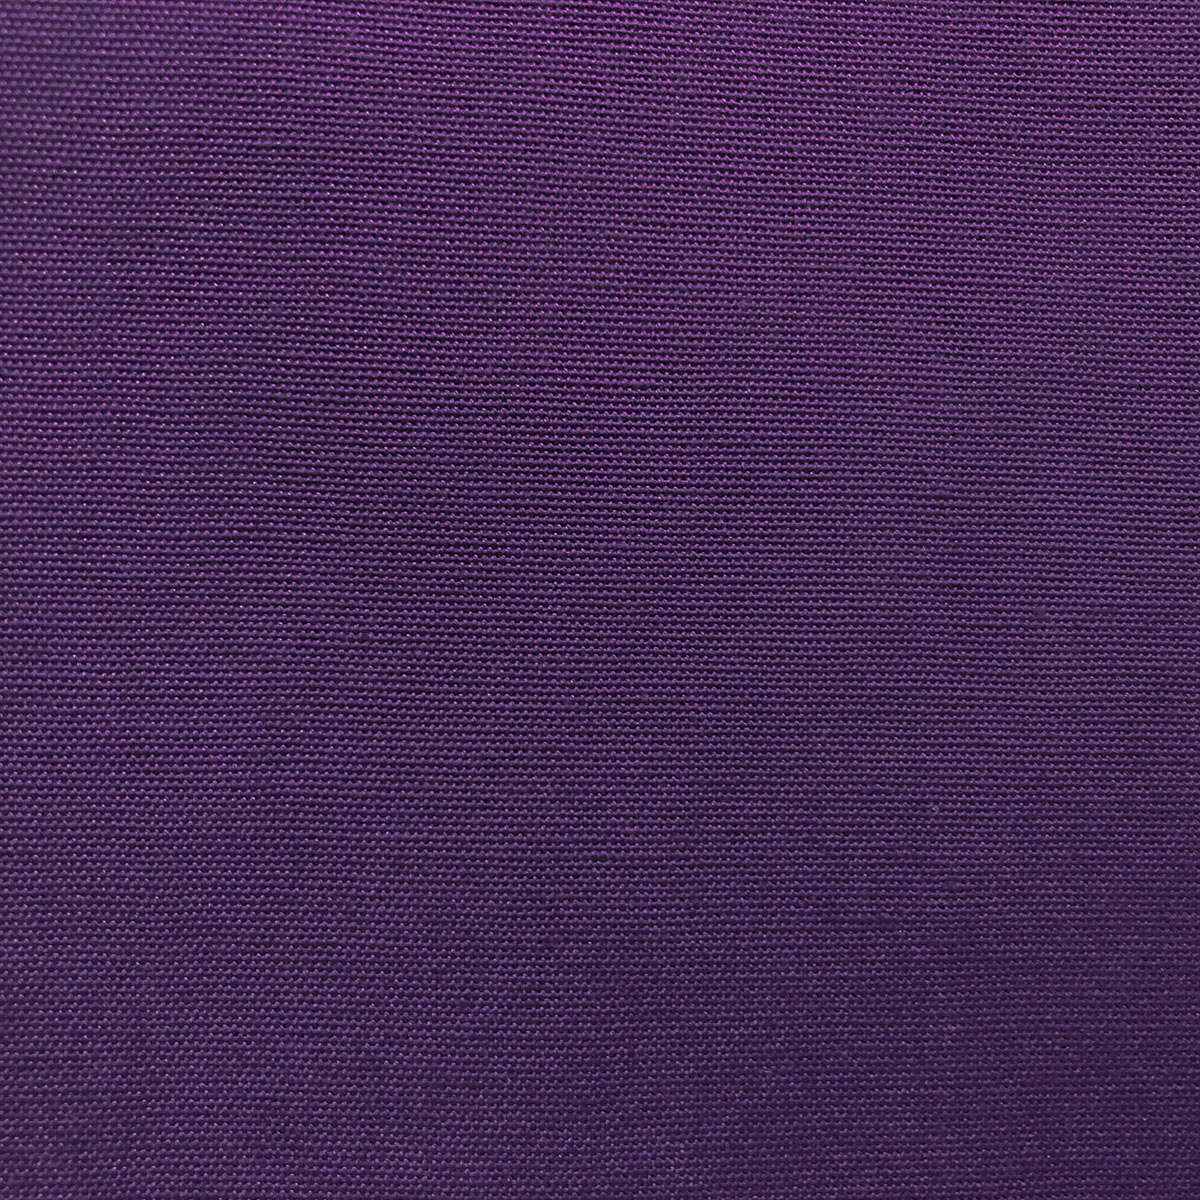 PRISMA 280 AM 045 PURPLE